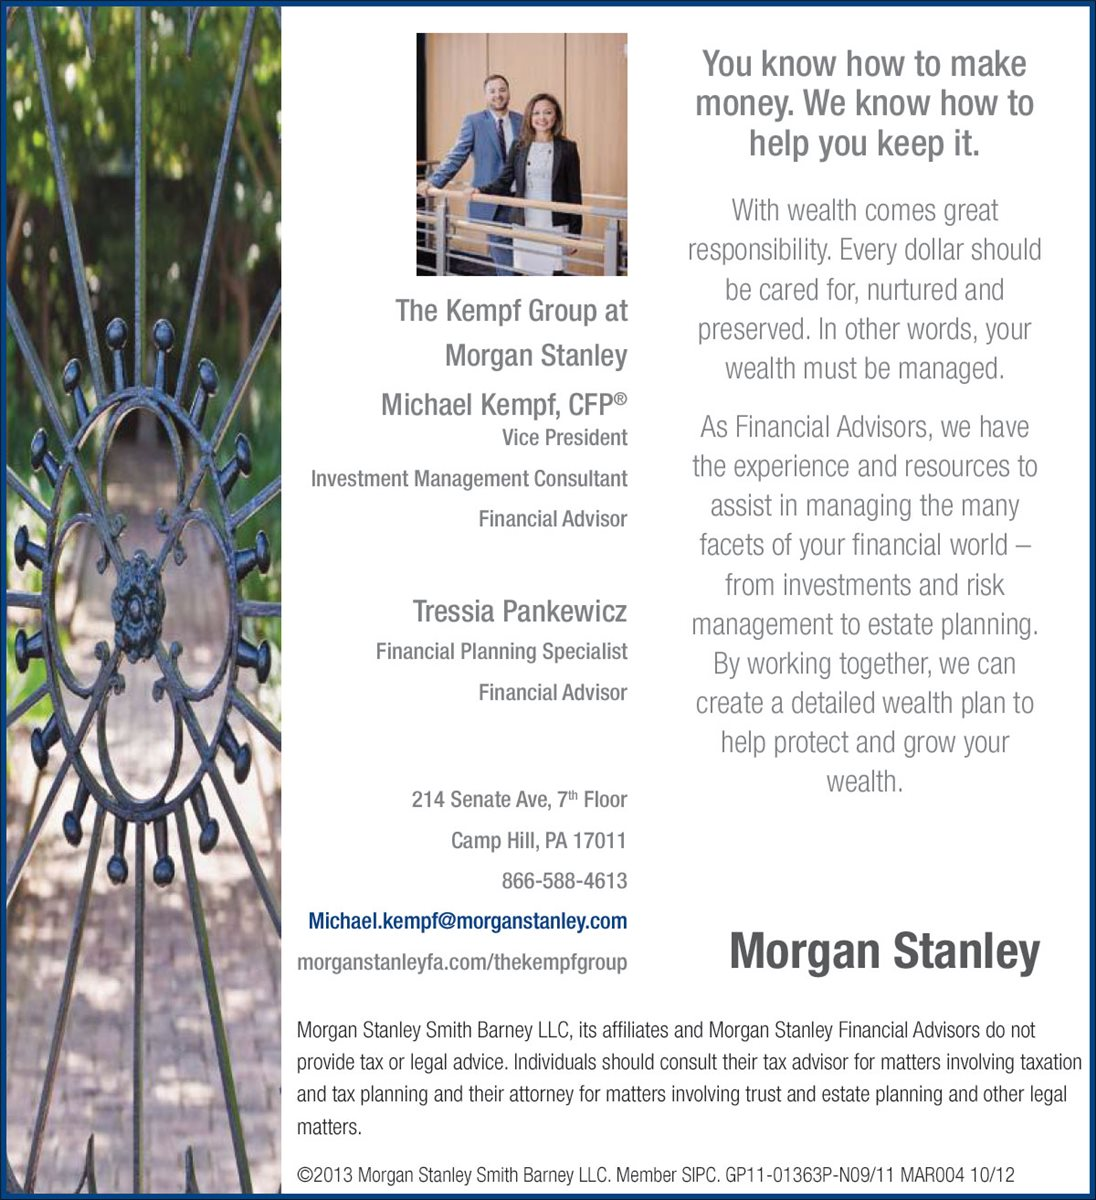 Christians In Business - The Kempf Group @ Morgan Stanley - Details